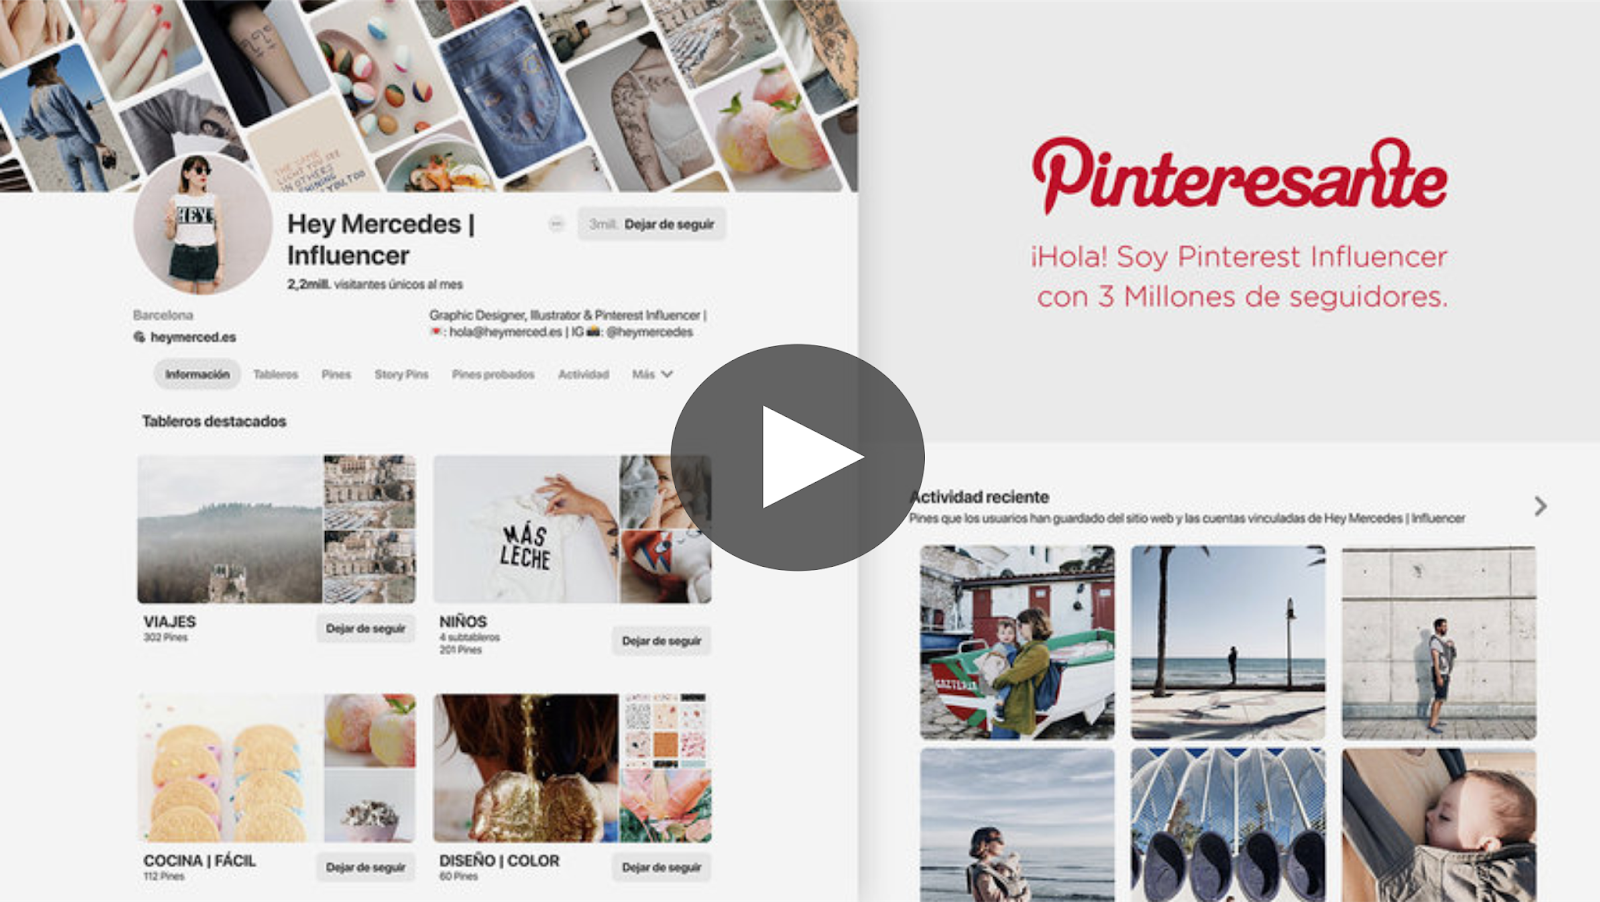 Curso de Pinterest Business como herramienta de marketing